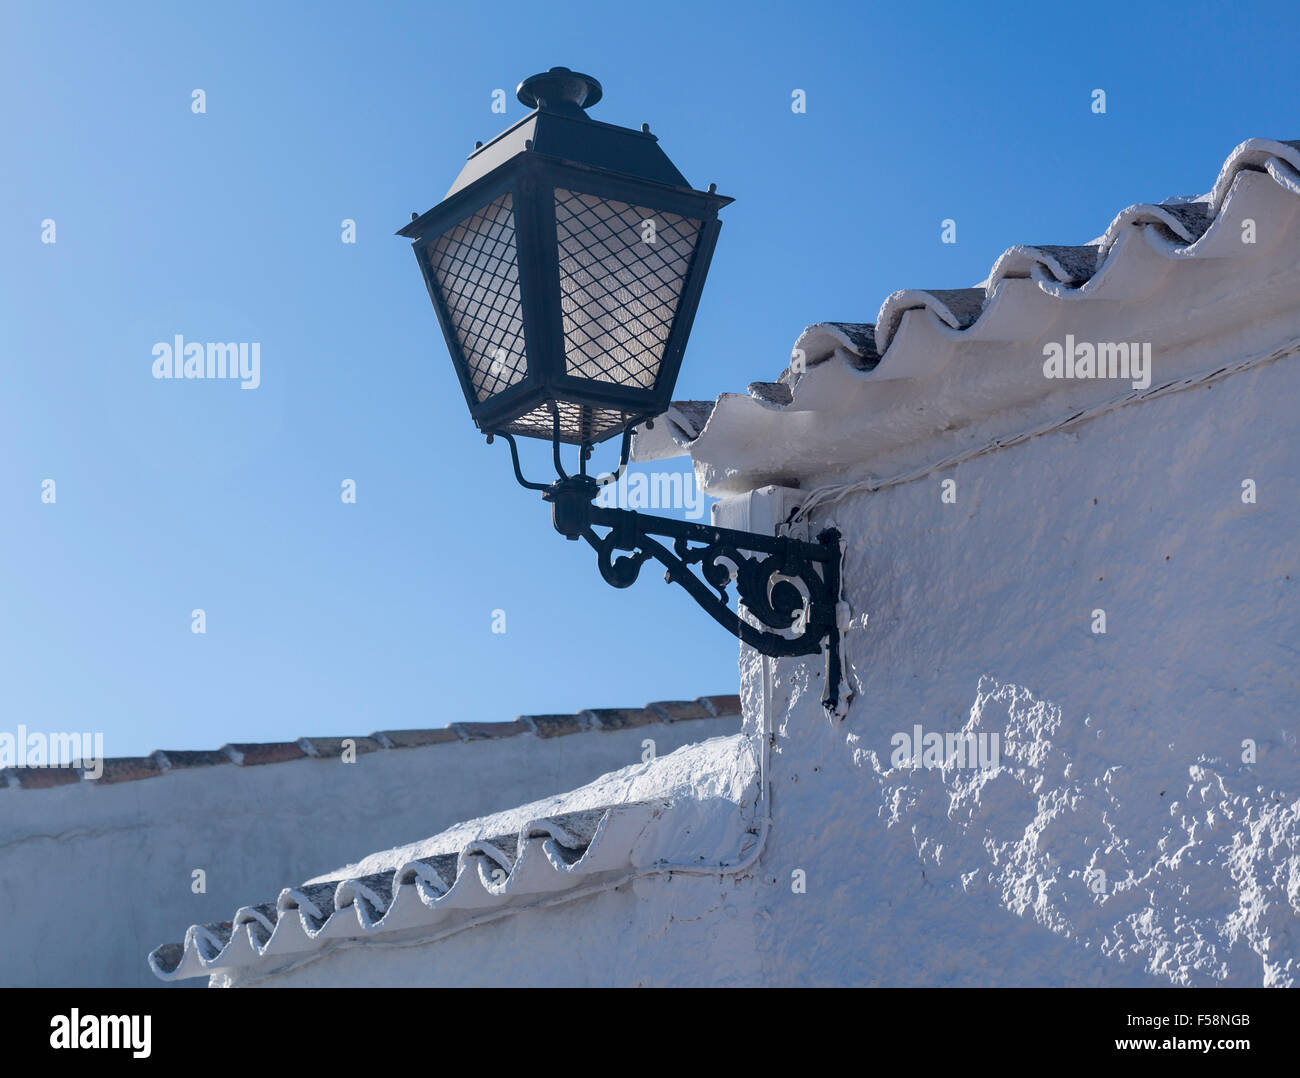 Ornate street lamp in a whitewashed courtyard in Campo de Criptana in Castilla-La Mancha, Spain - Stock Image